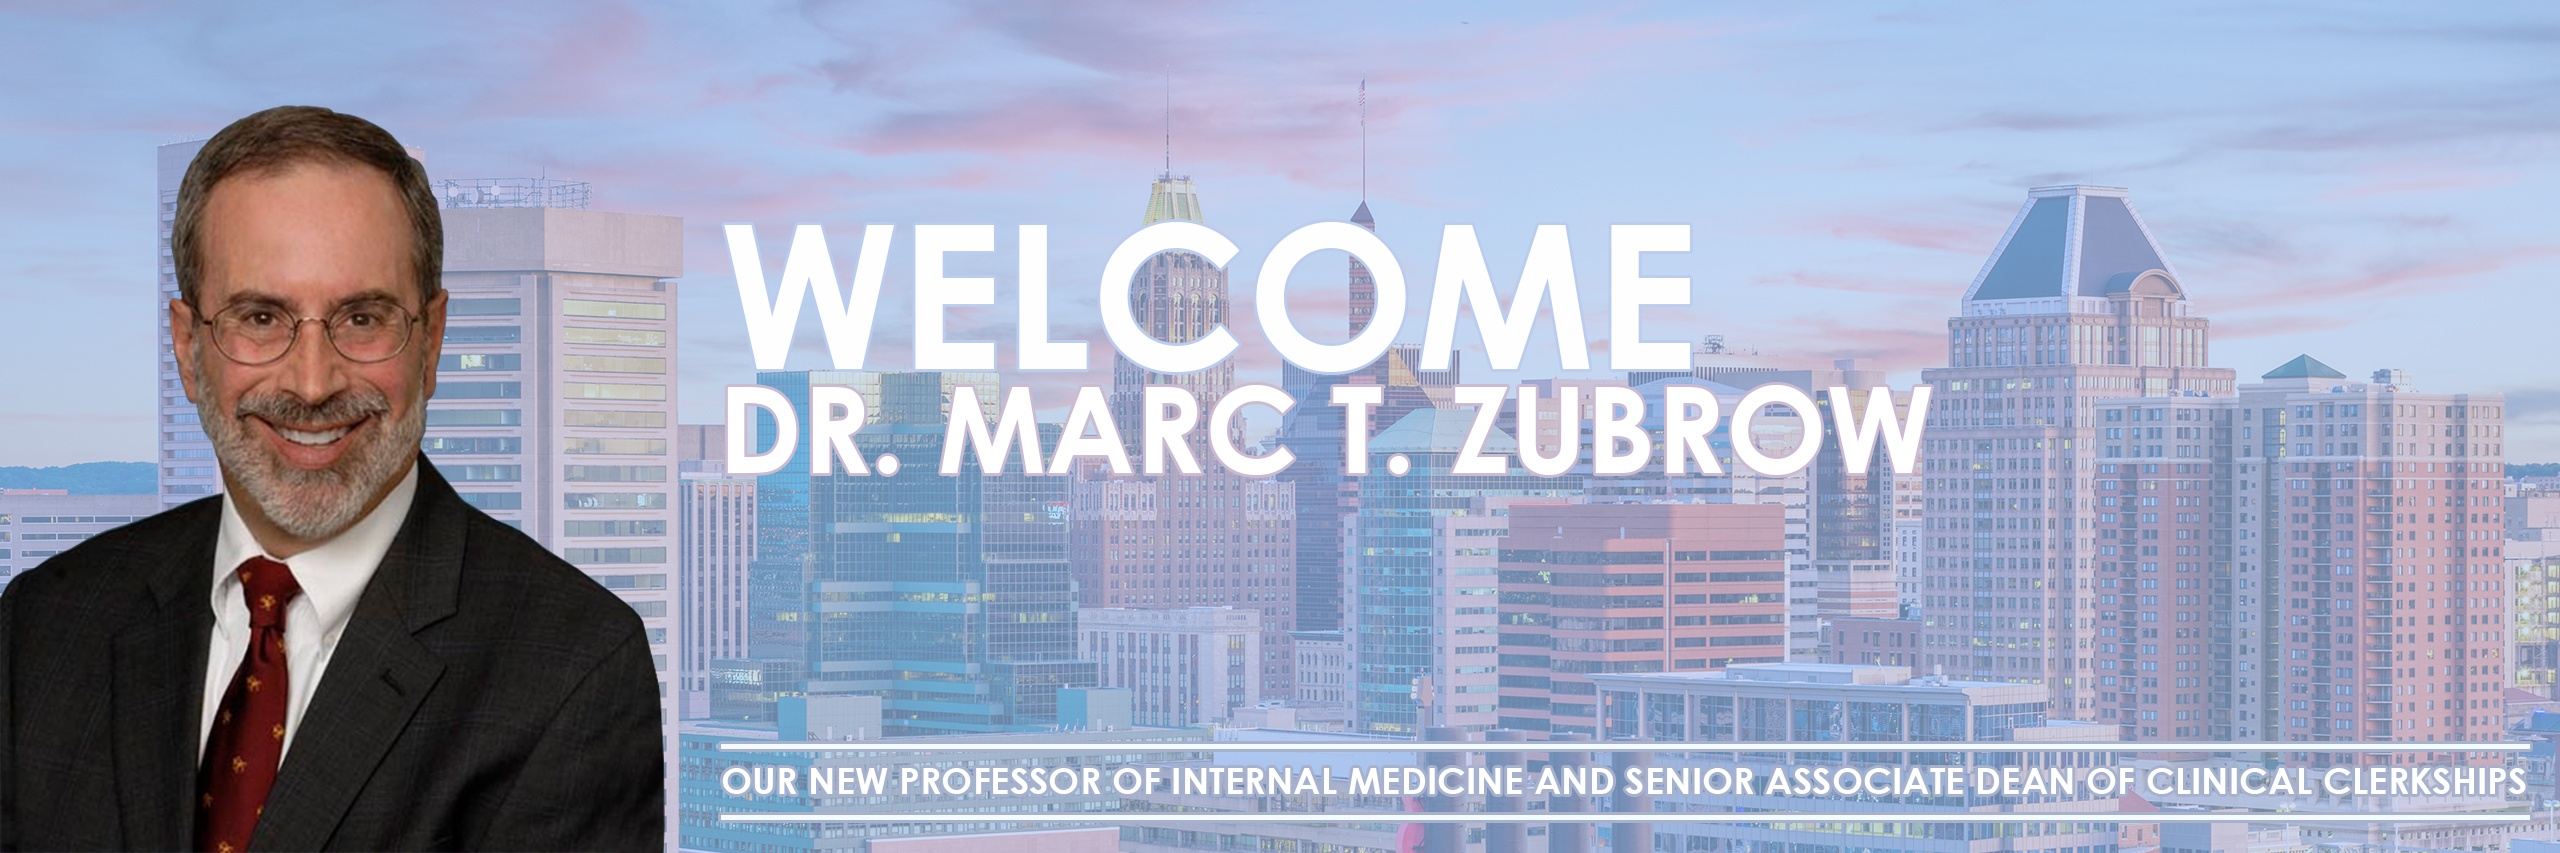 Welcome Dr. Marc T. Zubrow Our New Professor of Internal Medicine and Senior Associate Dean of Clinical Clerkships